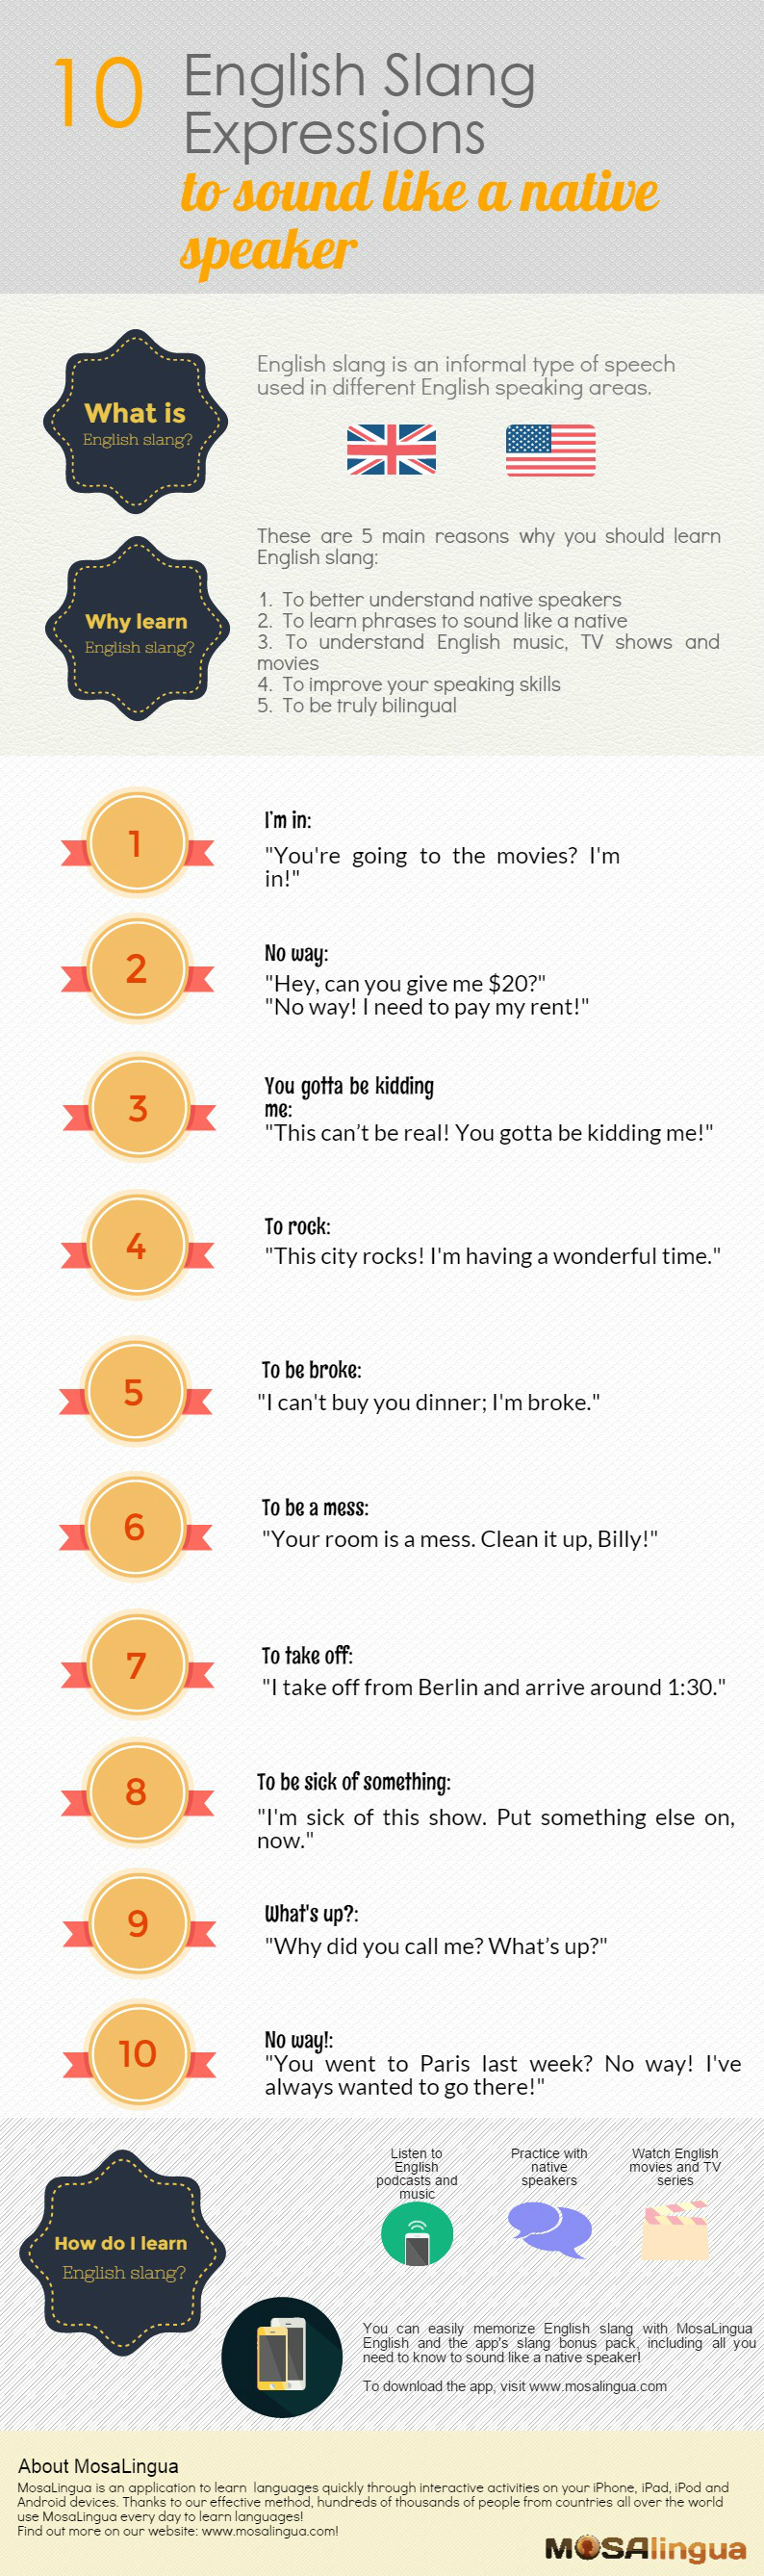 10 English Slang Expressions to Sound Like a Native Speaker